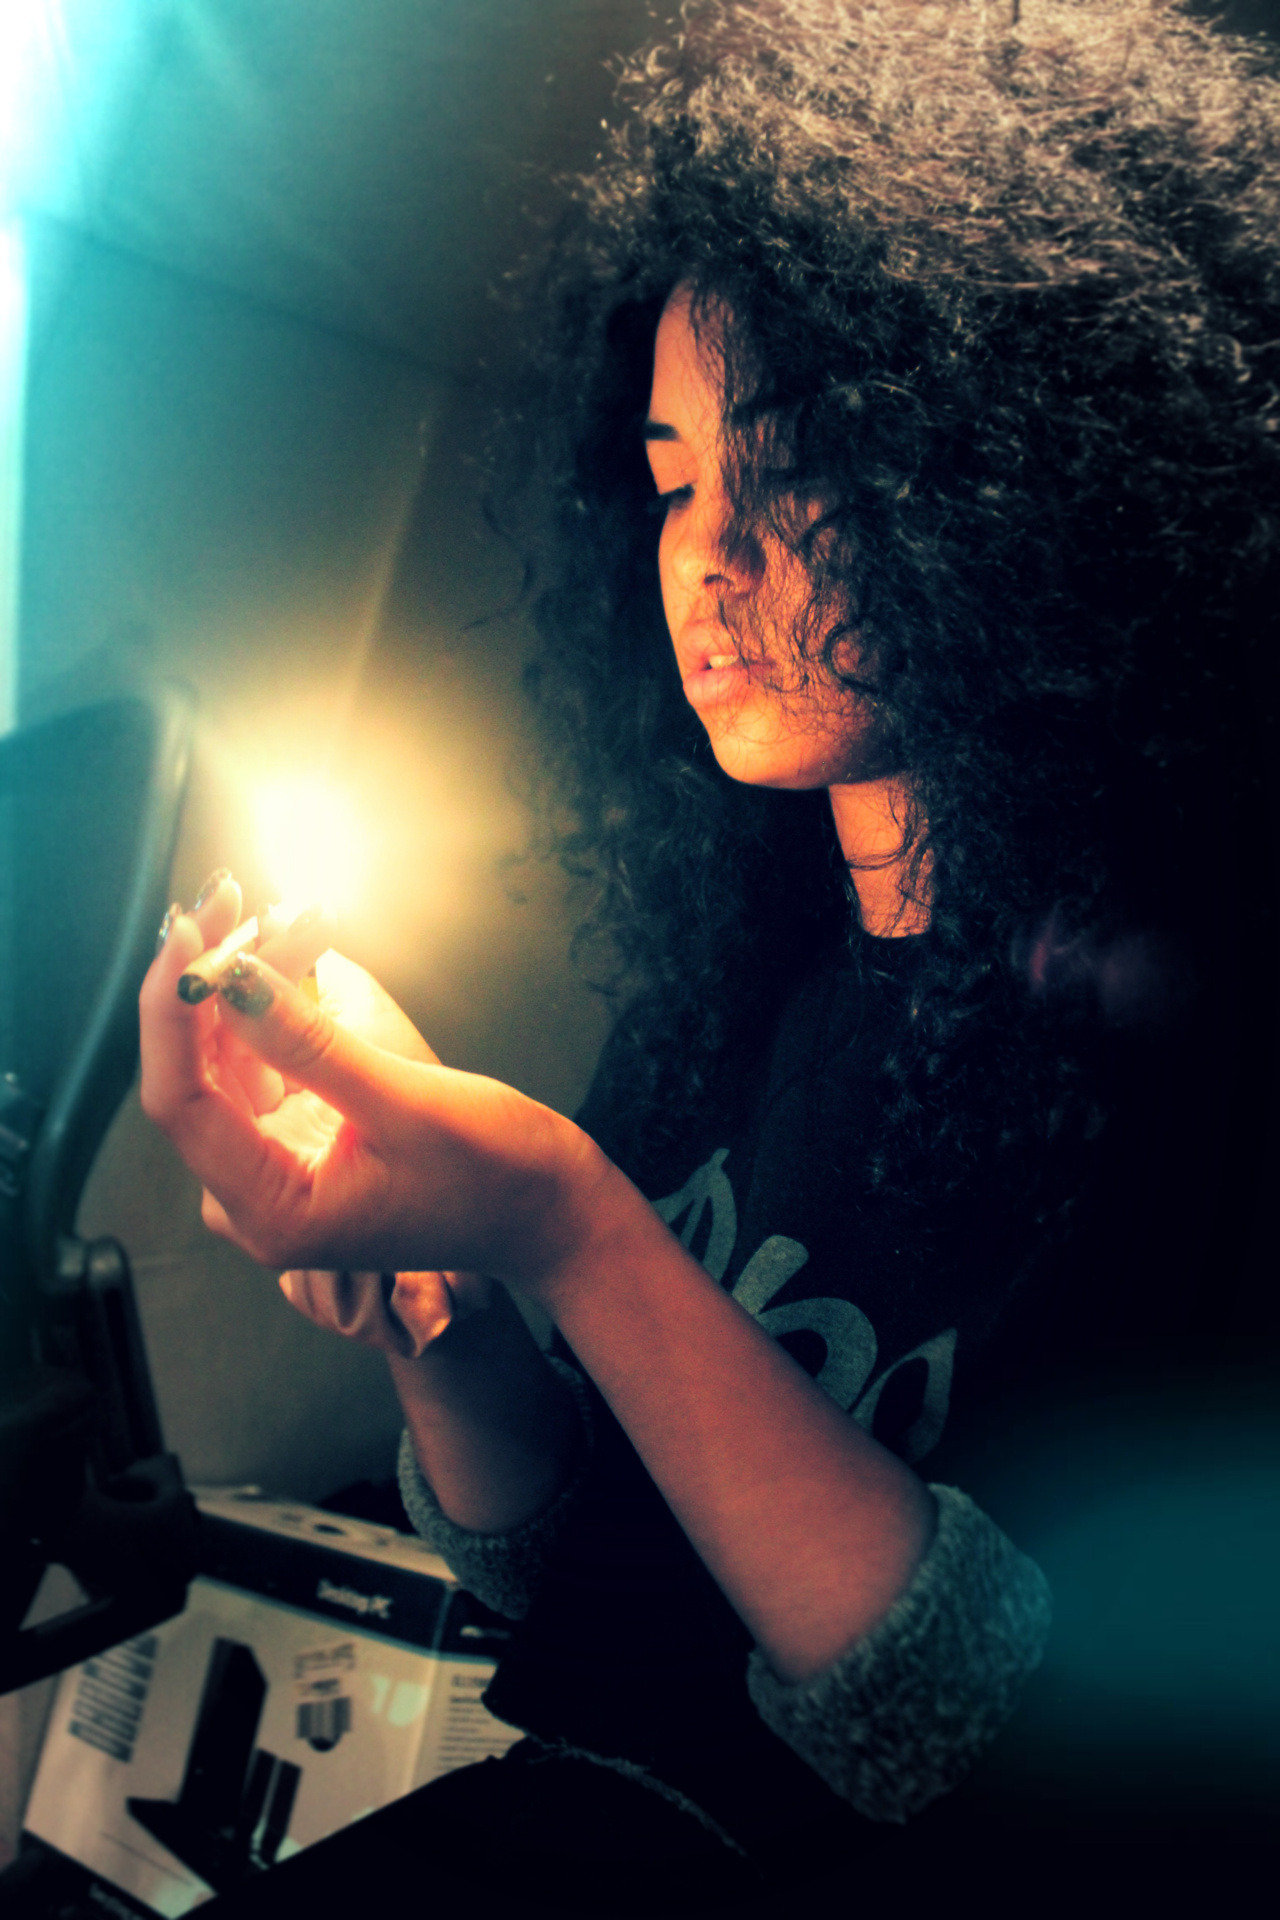 asiadeelight:  swaqqieee:  fire.  @asiadee photographed by @swaqqtv, this is my life in a nutshell.